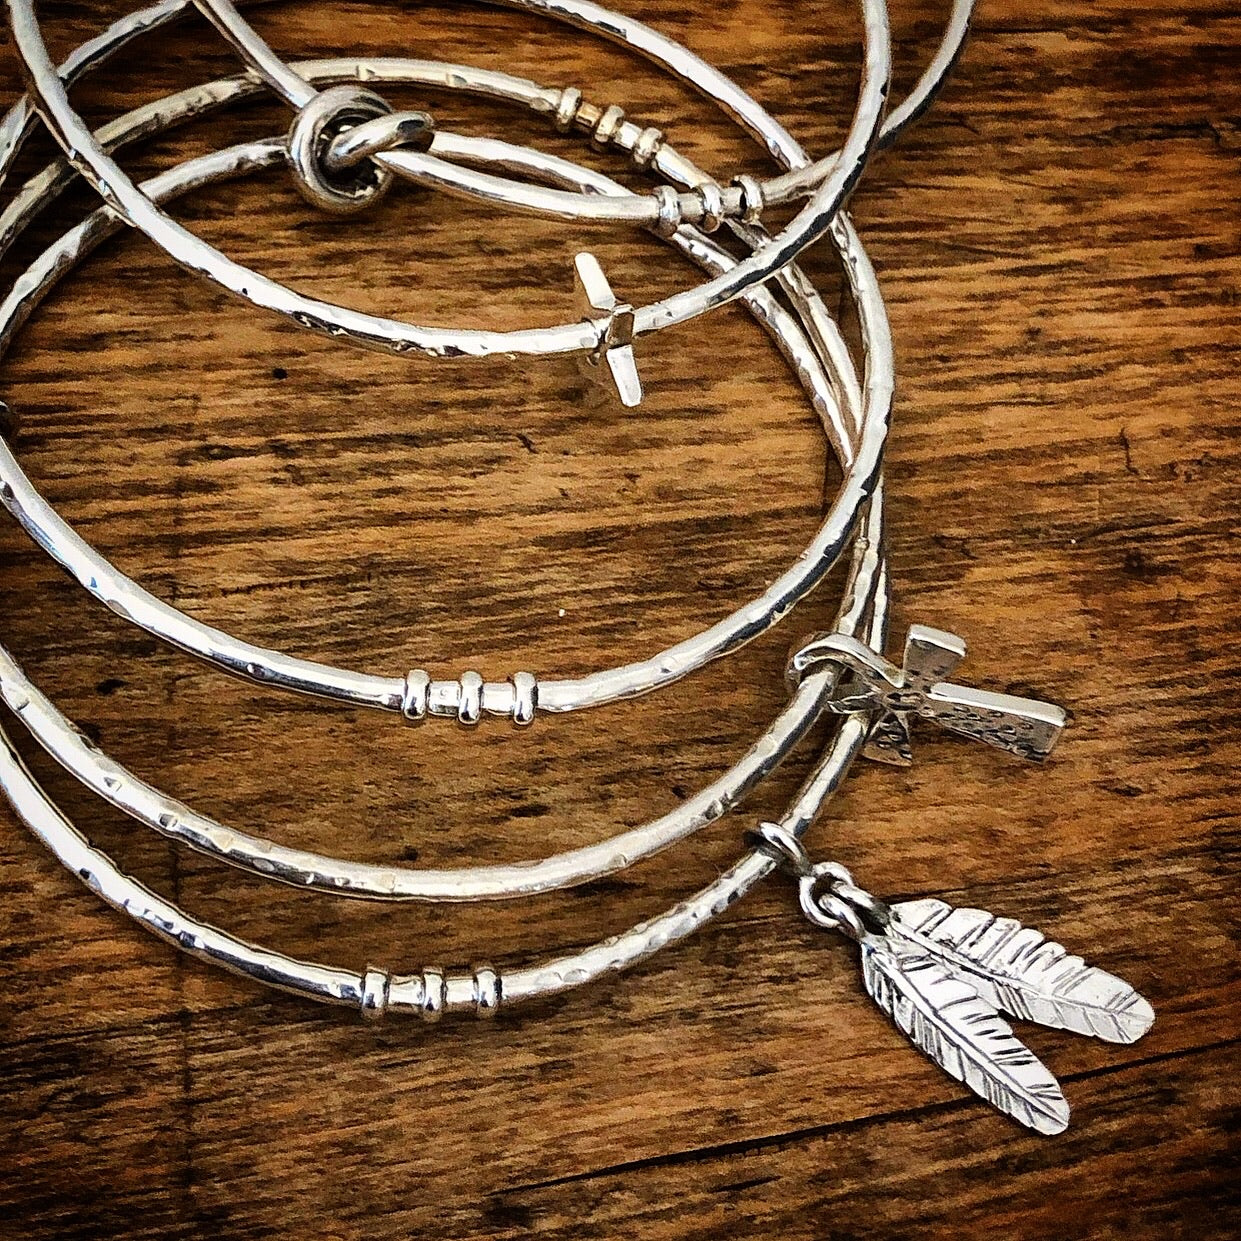 'Liberty' 2 Feathers Bangle